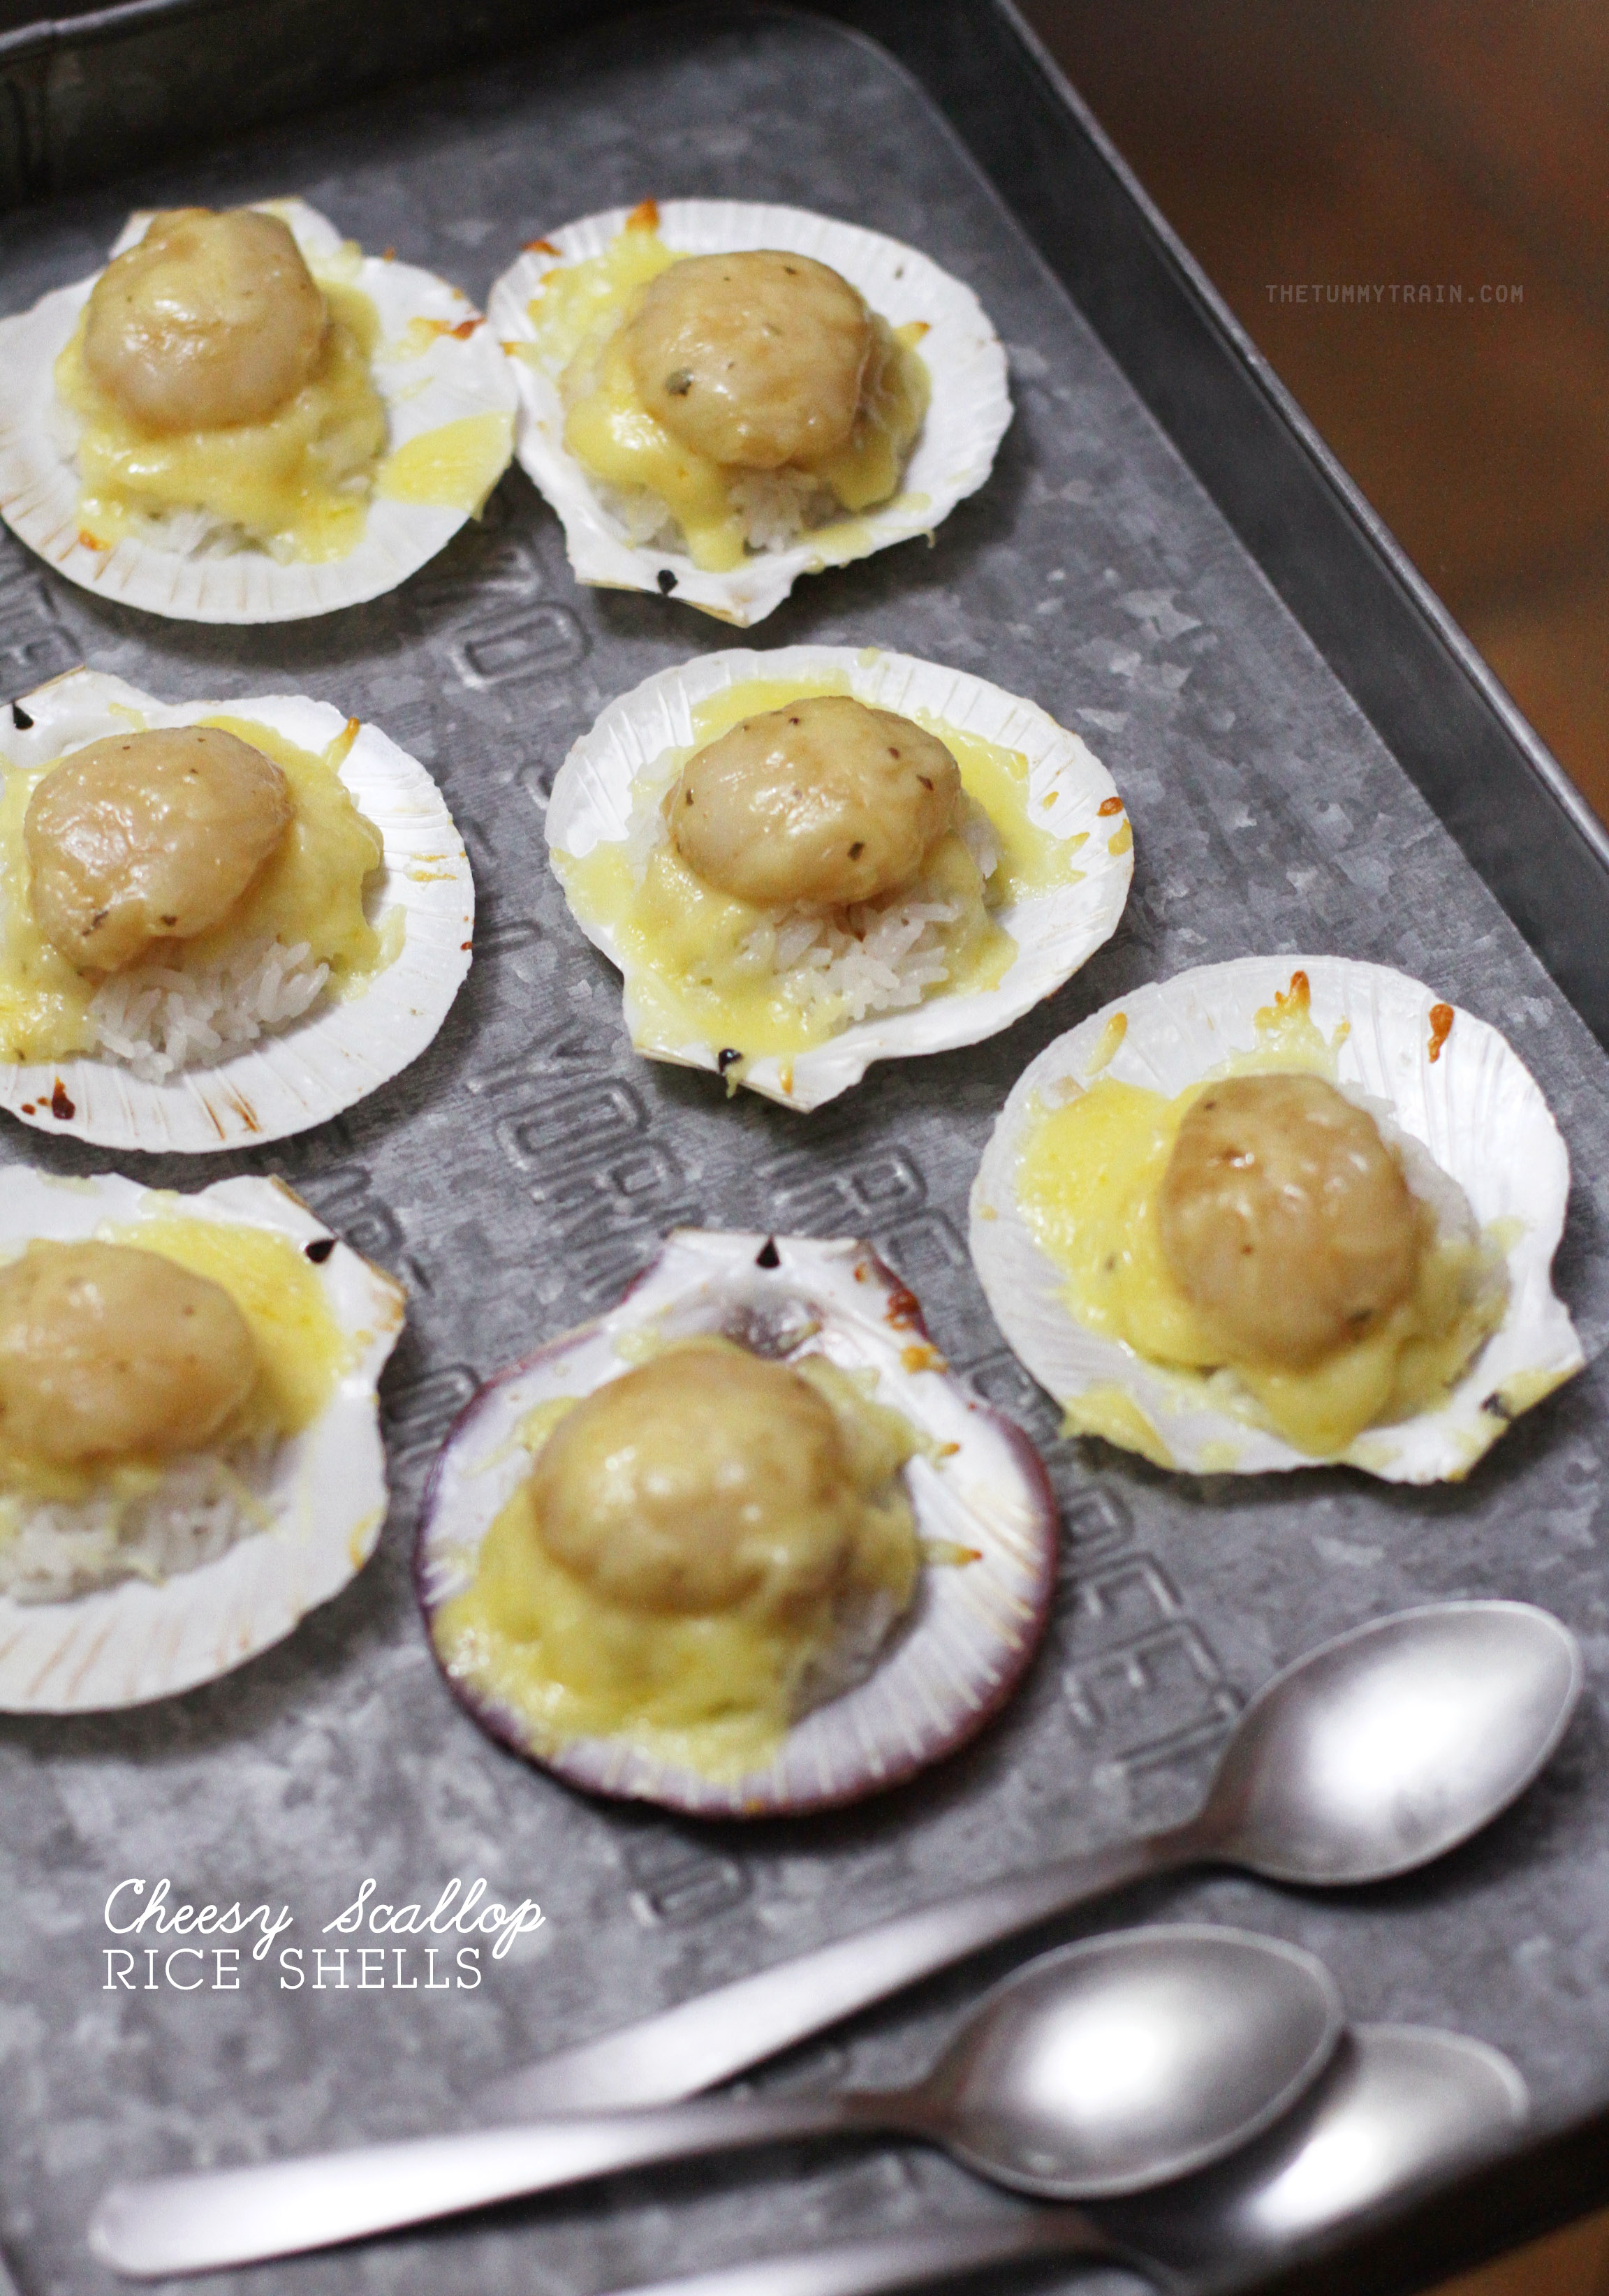 Dona Maria Cheesy Scallop 1 - A taste of the sea at home thanks to Doña Maria Rice